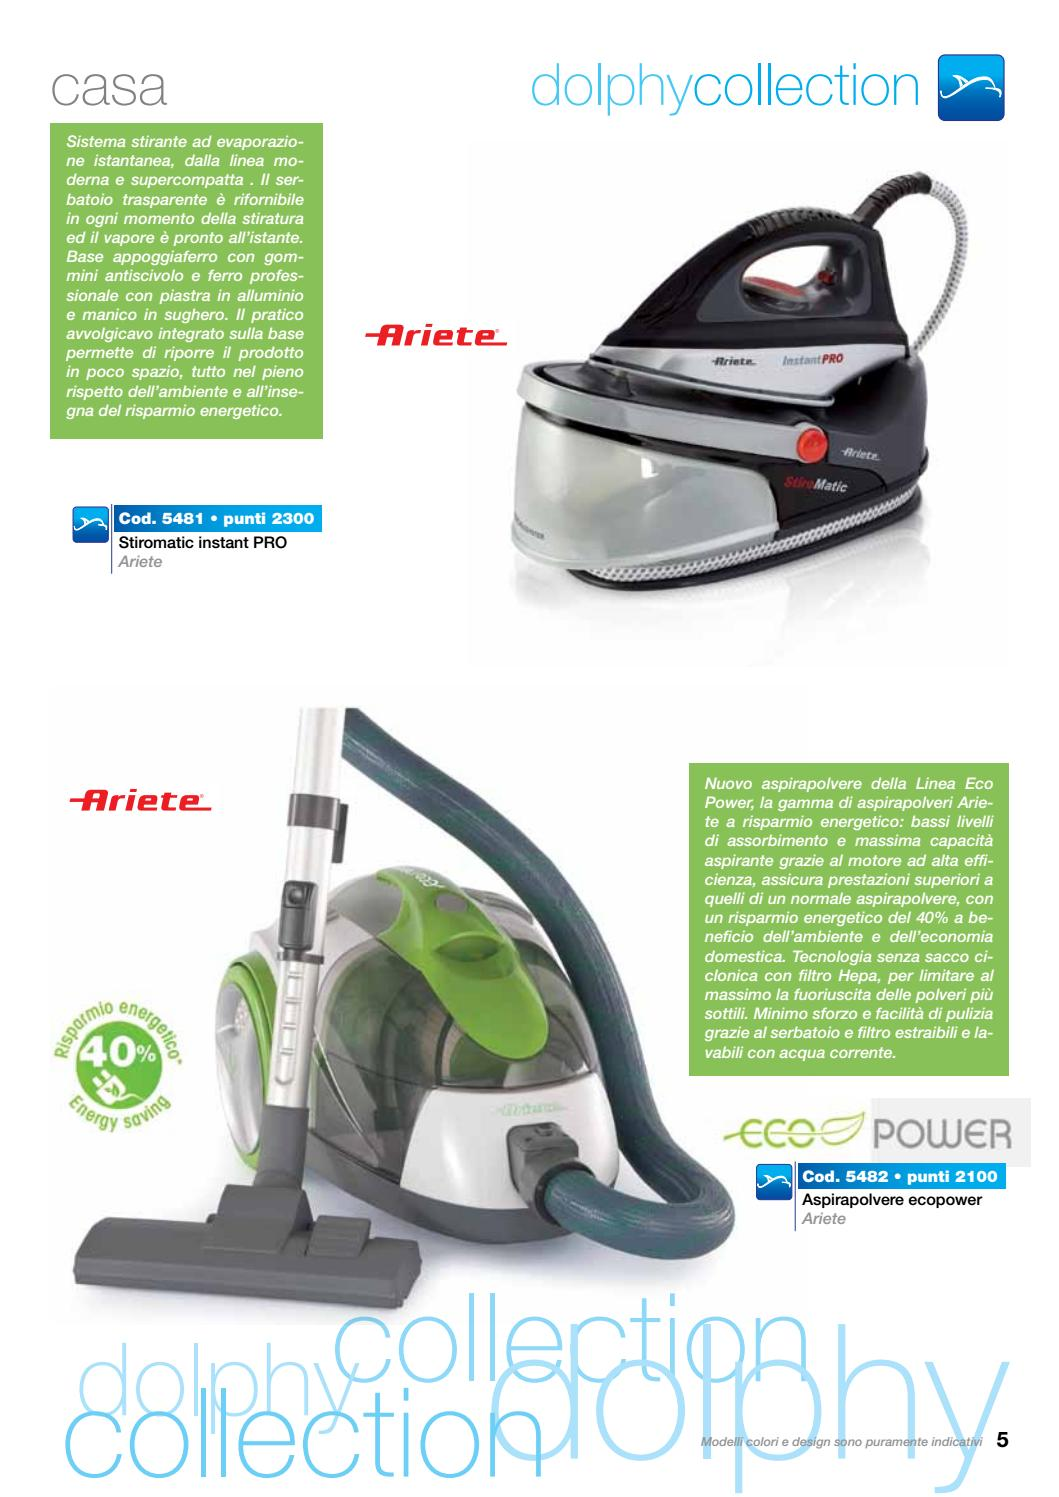 Aspirapolvere Ariete Eco Power Dolphy Collection Catalogo 2016 17 By Ciro Bosso Issuu